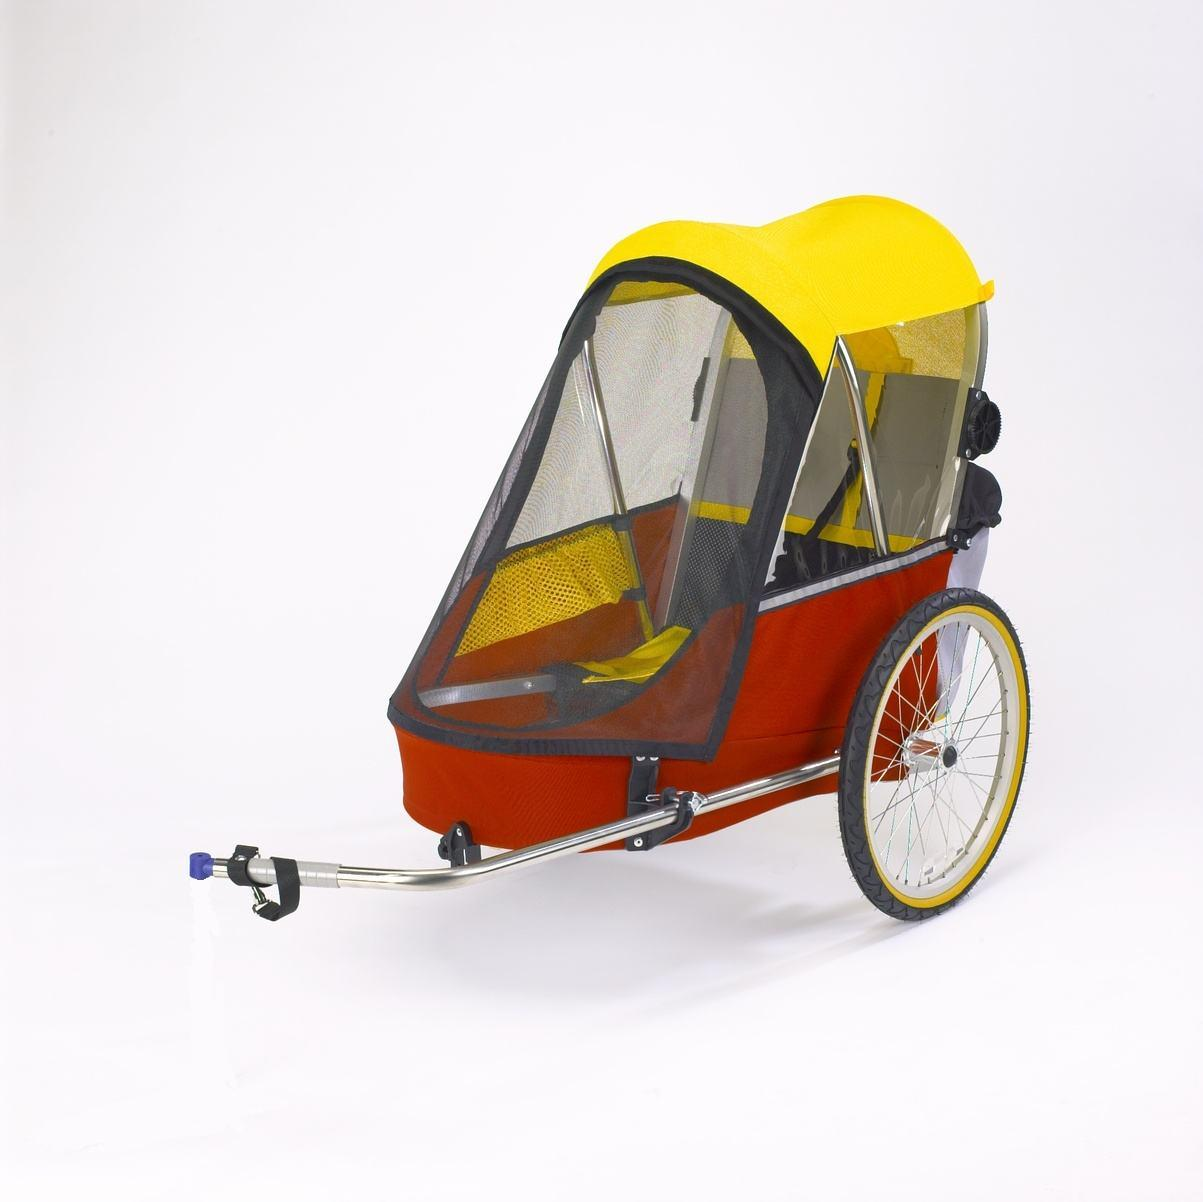 premium-single-bicycle-trailer-red-yellow